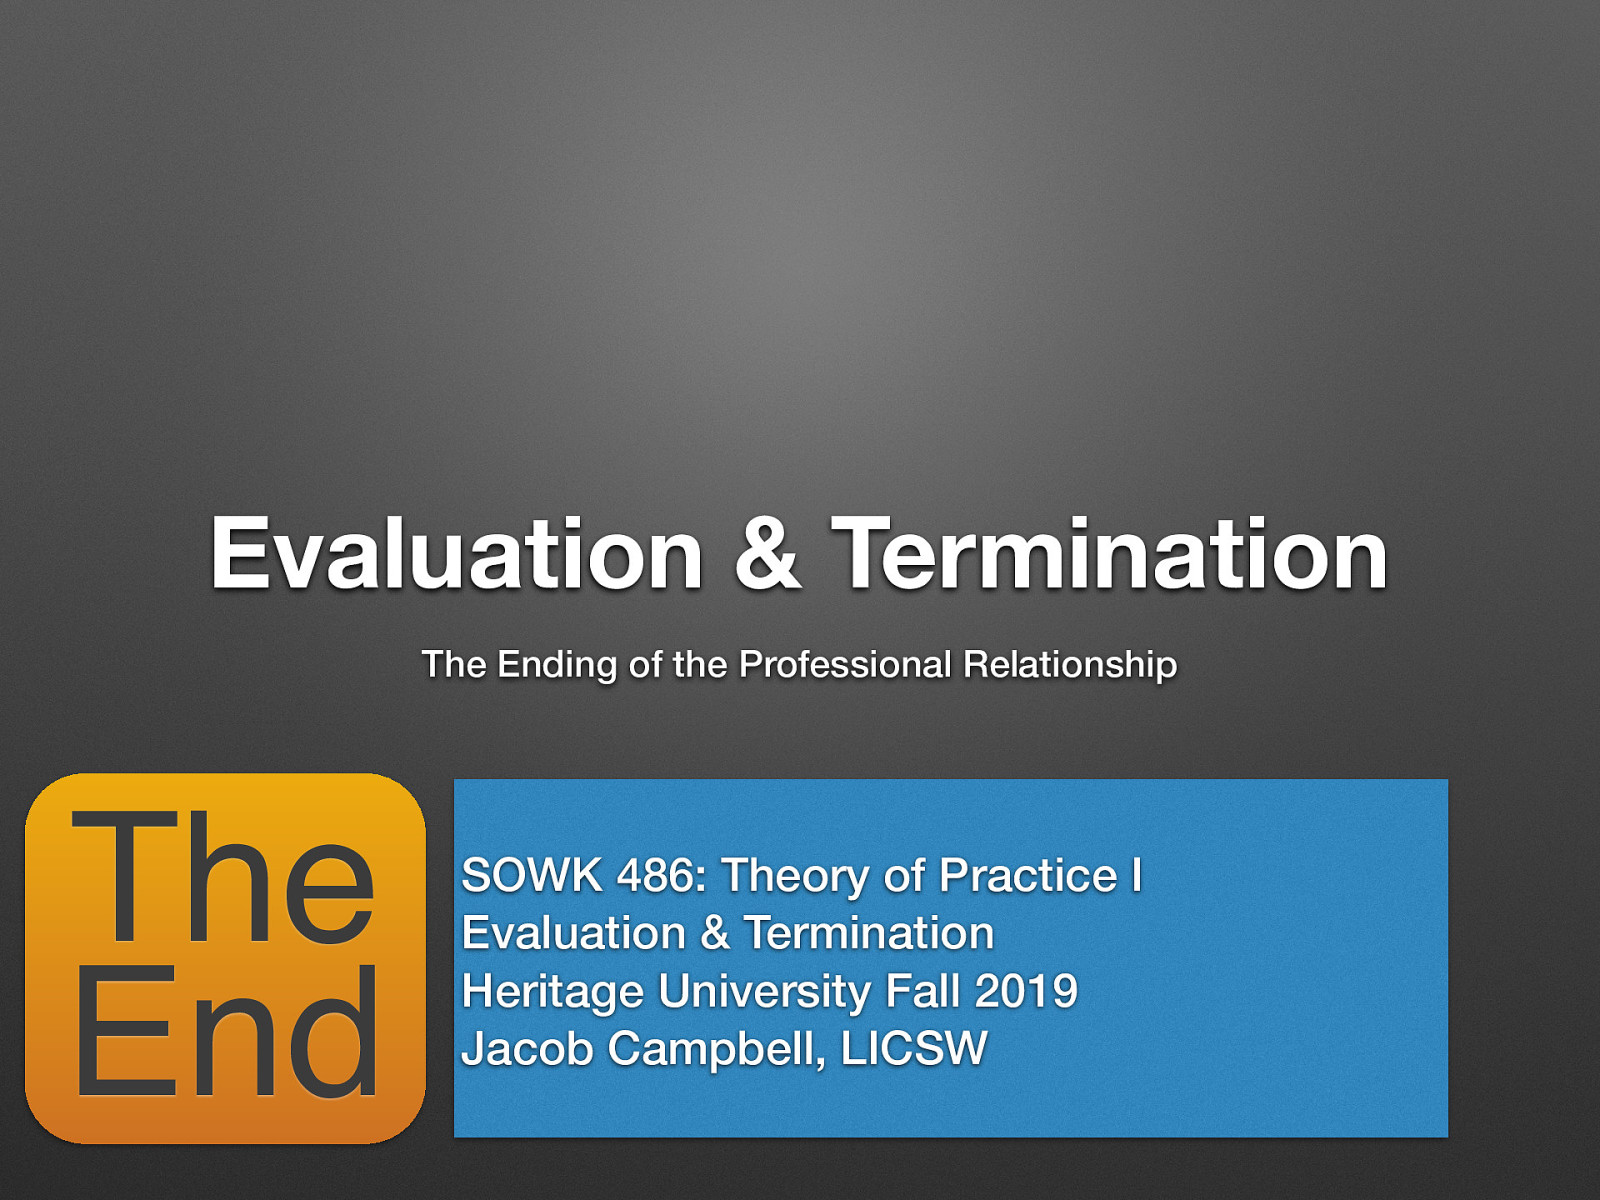 Week 14 - Evaluation and Termination: The Ending of the Professional Relationship